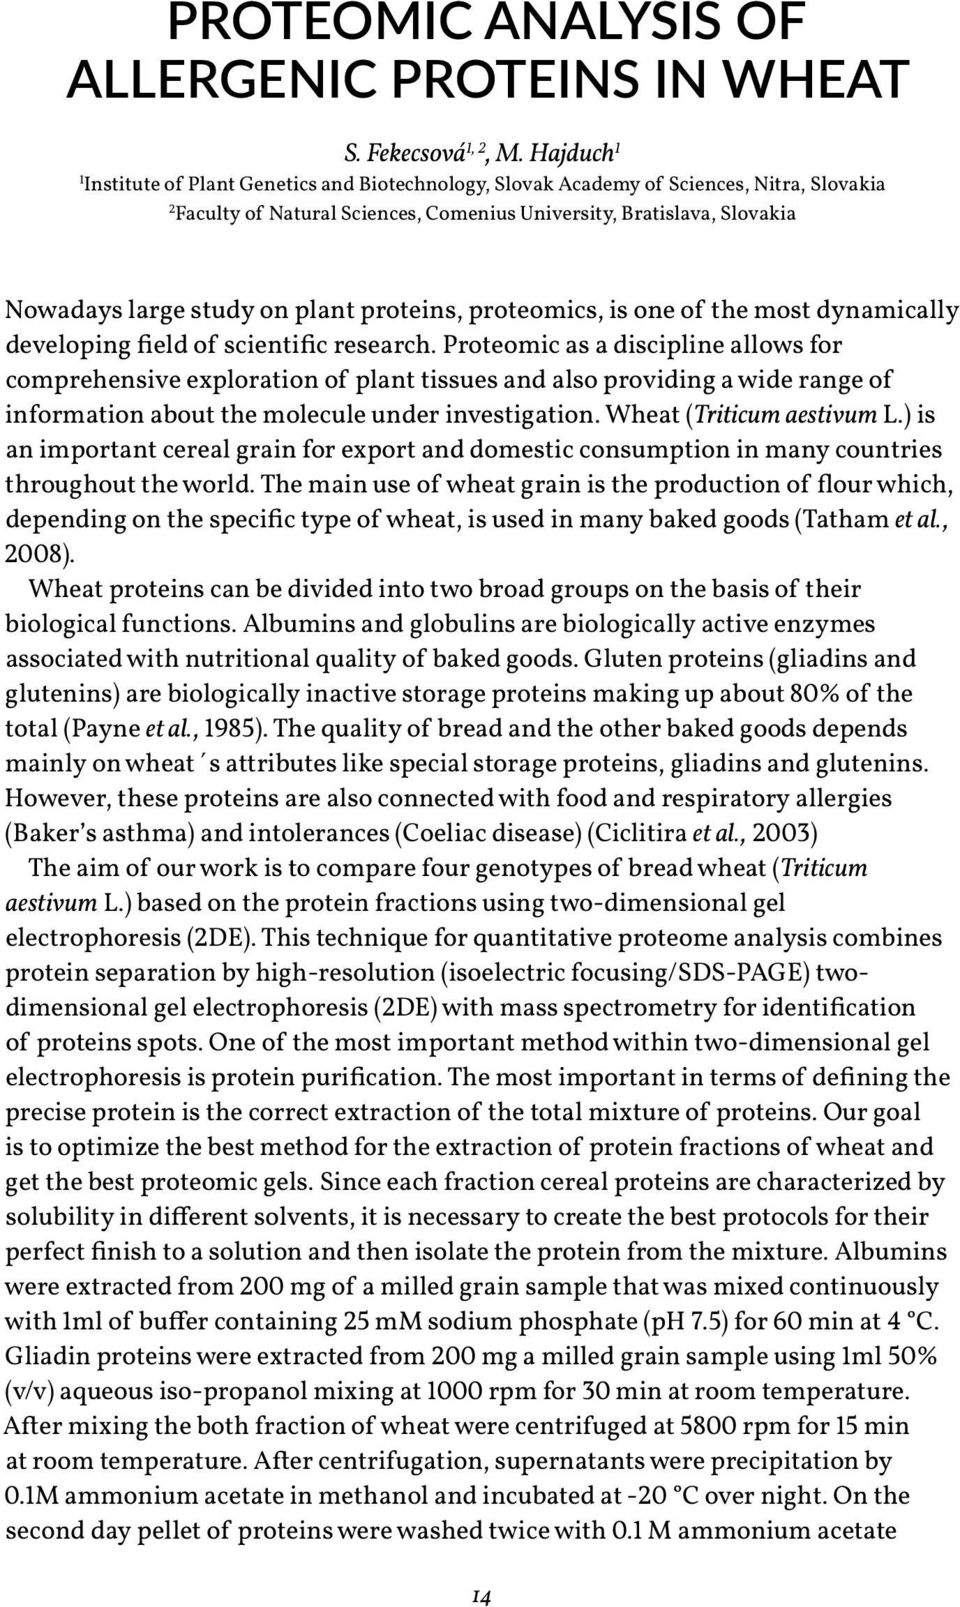 plant proteins, proteomics, is one of the most dynamically developing field of scientific research.